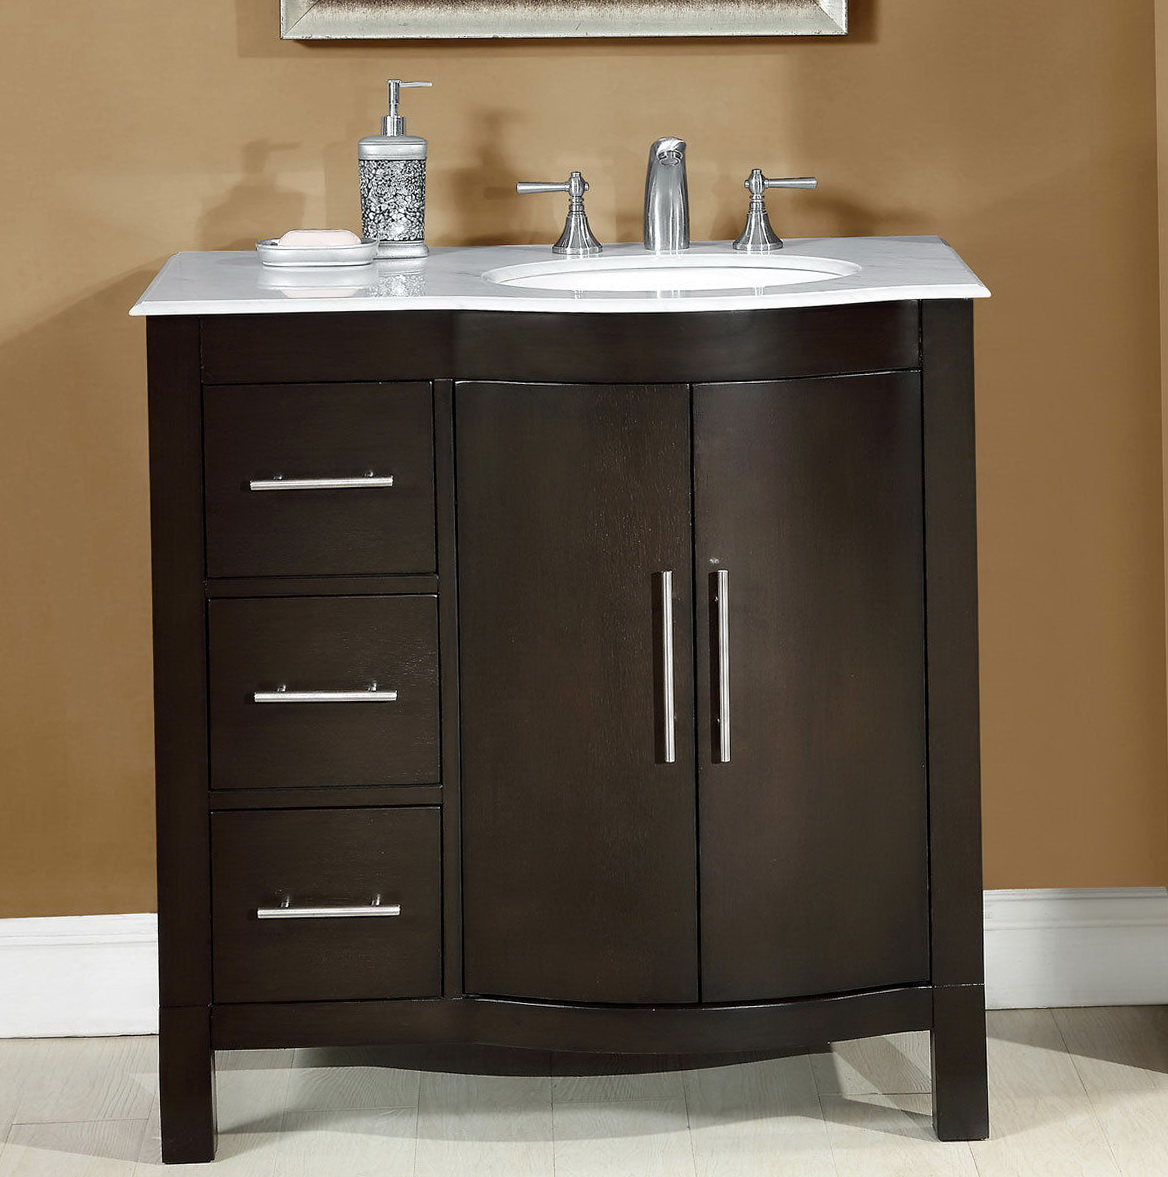 36 Inch Vanity With Marble Top